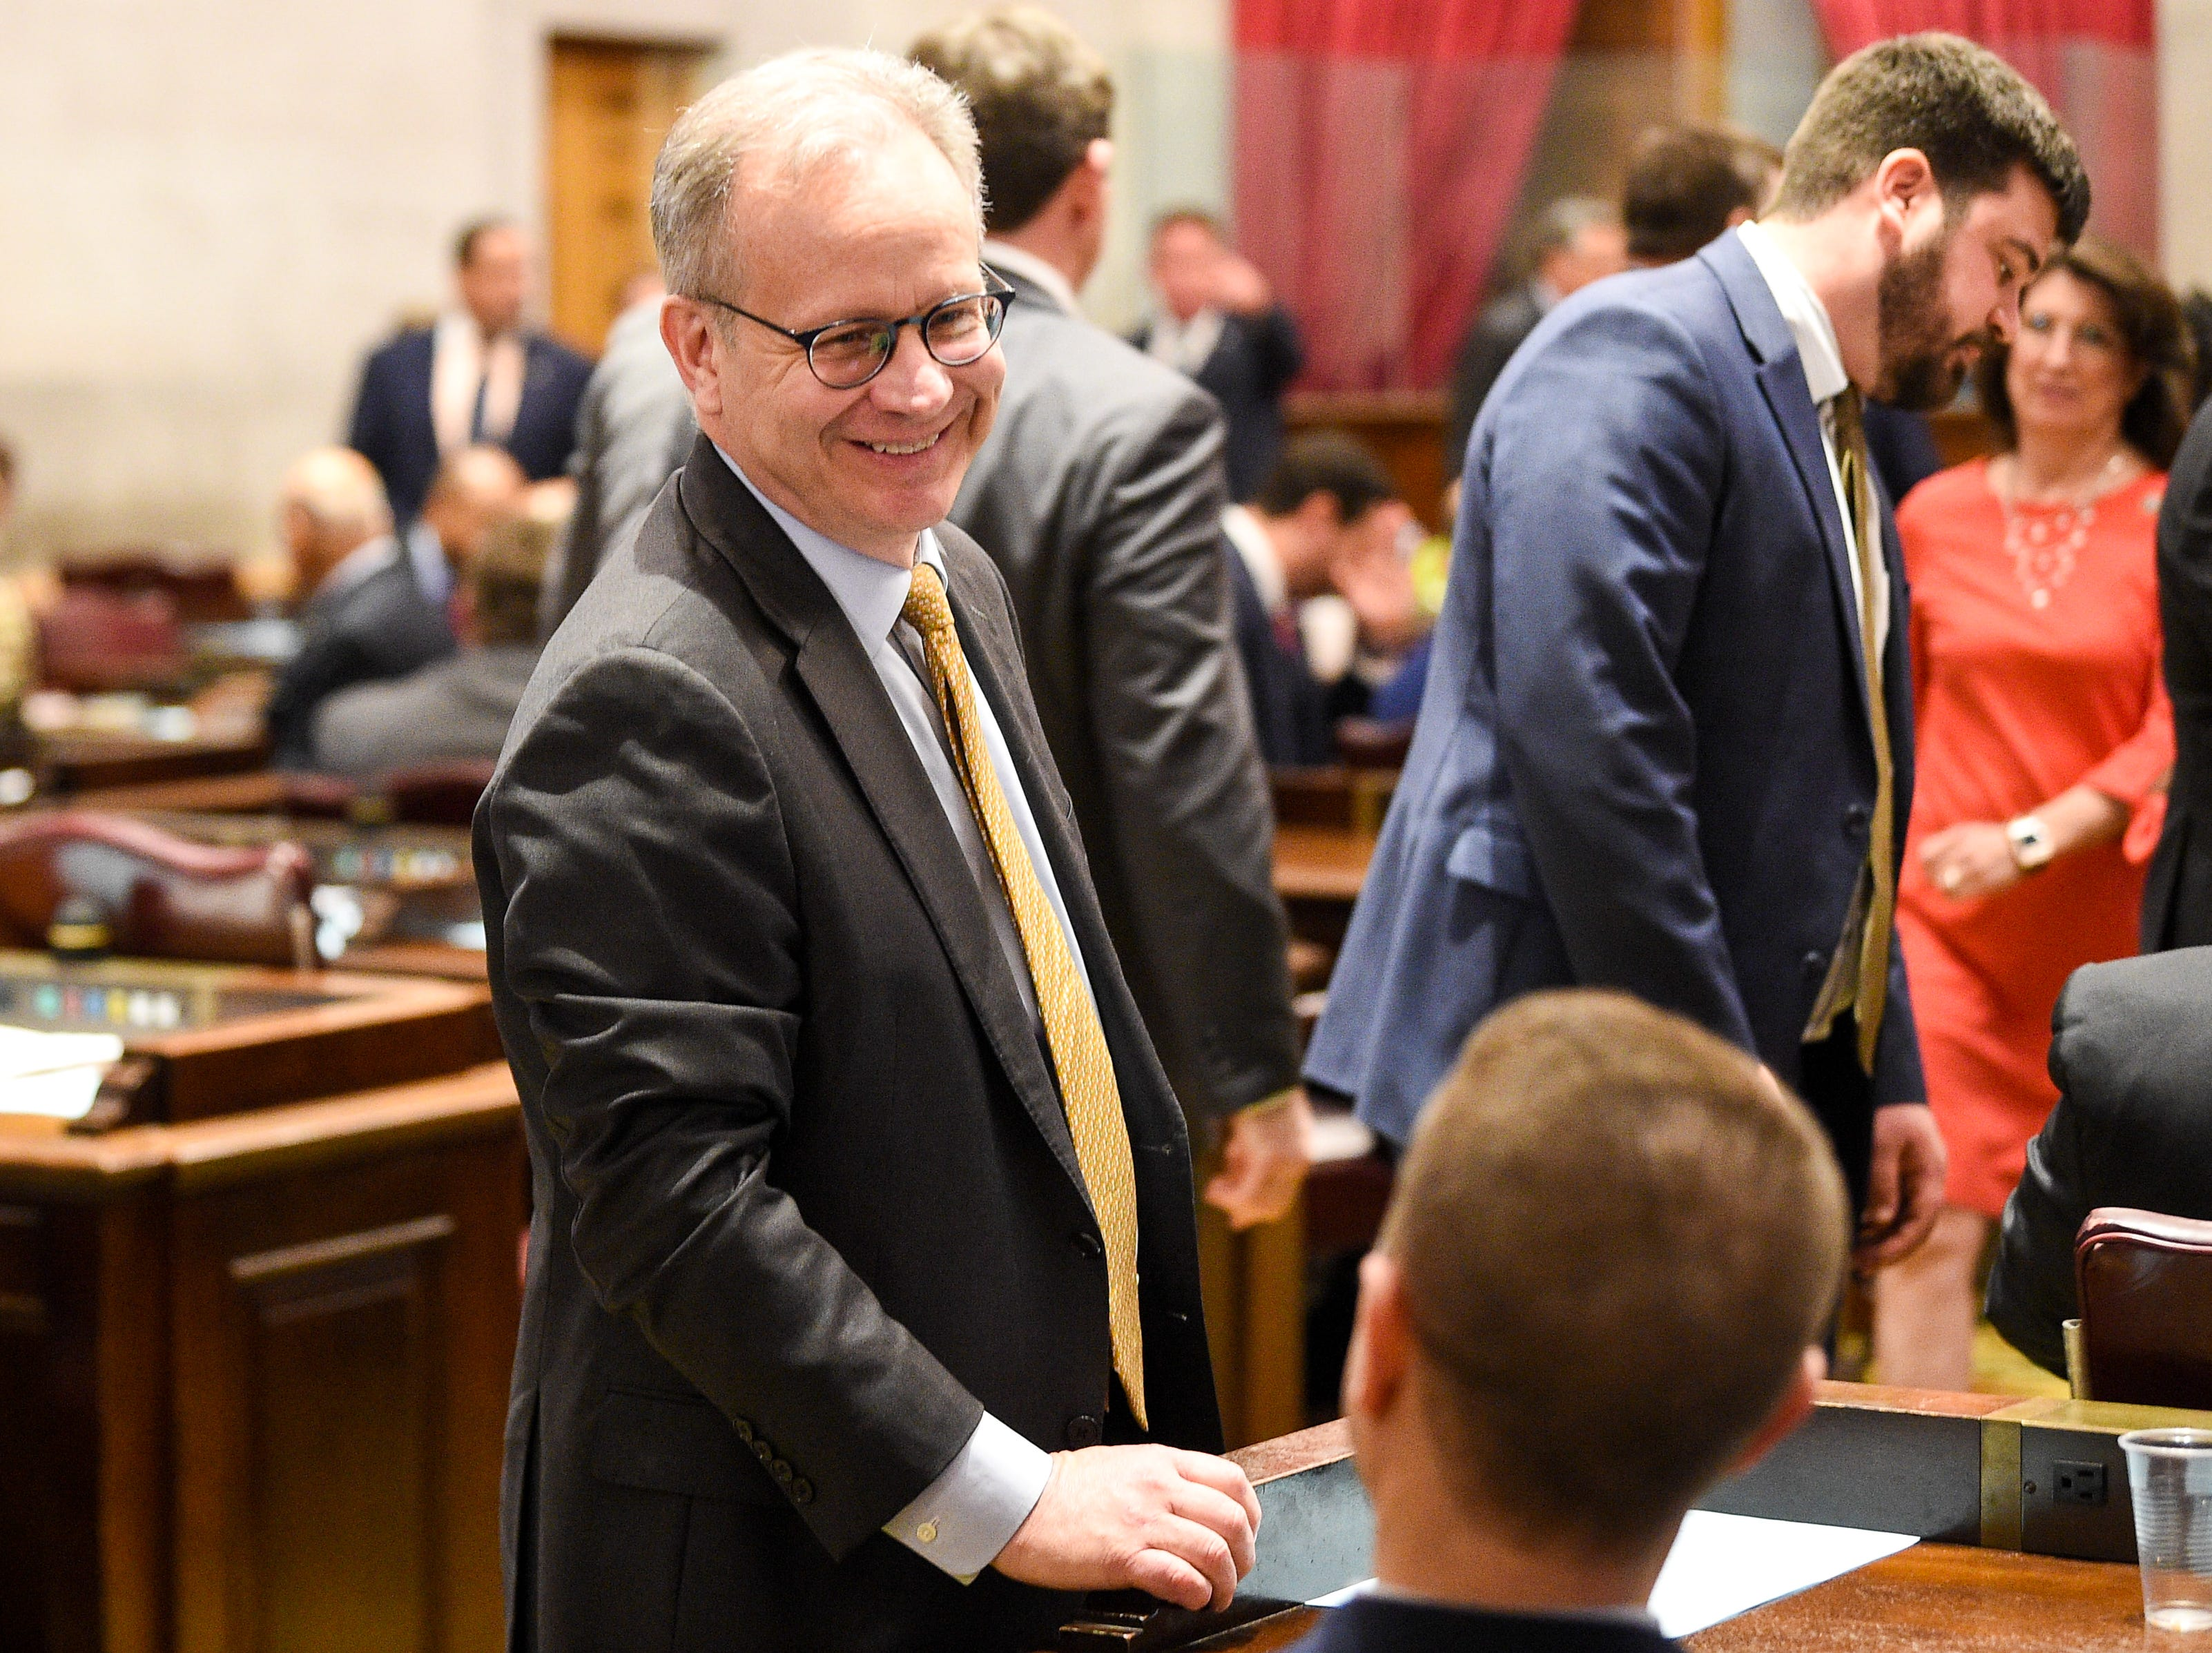 Nashville Mayor David Briley arrives to hear Gov. Bill Lee give his first State of the State address before a joint session of the Tennessee General Assembly inside the House chambers at the state Capitol in Nashville on Monday, March 4, 2019.